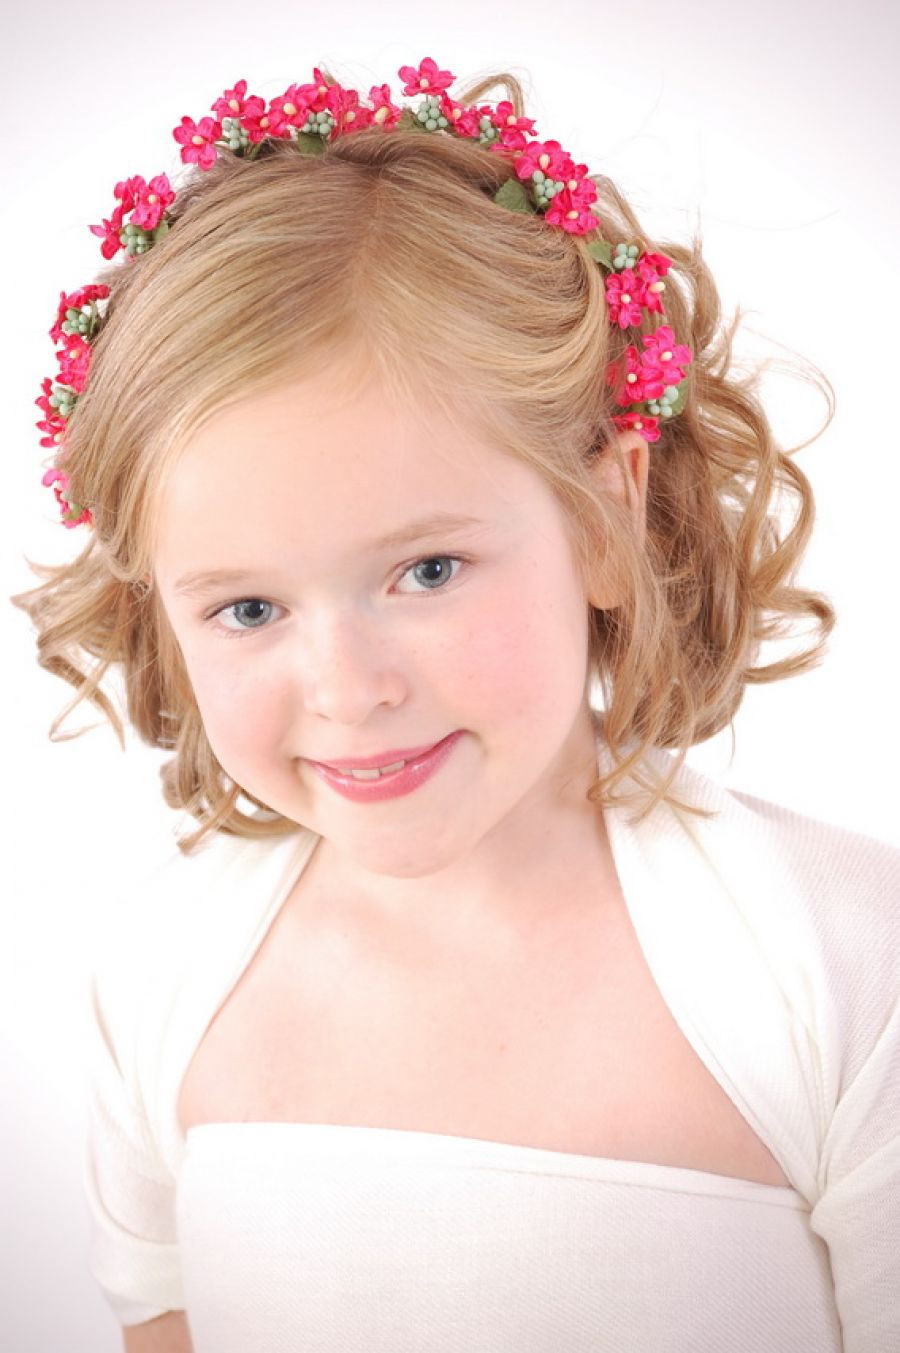 Hairstyles For Toddler Girls  20 Hairstyles for Kids with MagMent